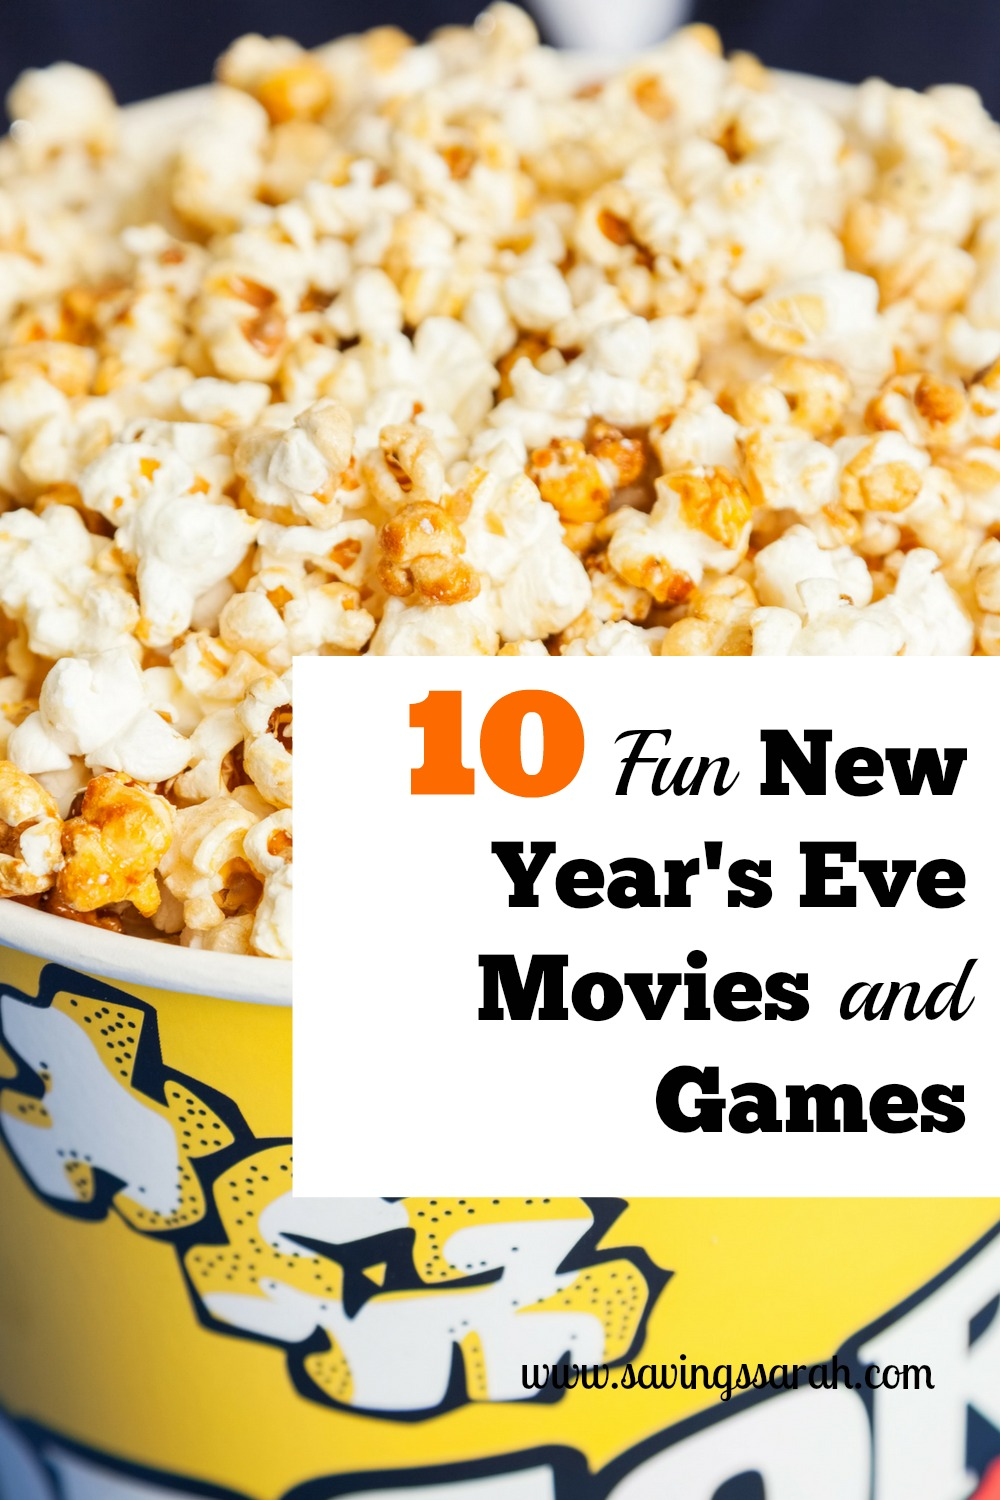 10 Fun New Year's Eve Movies and Games - Earning and ...